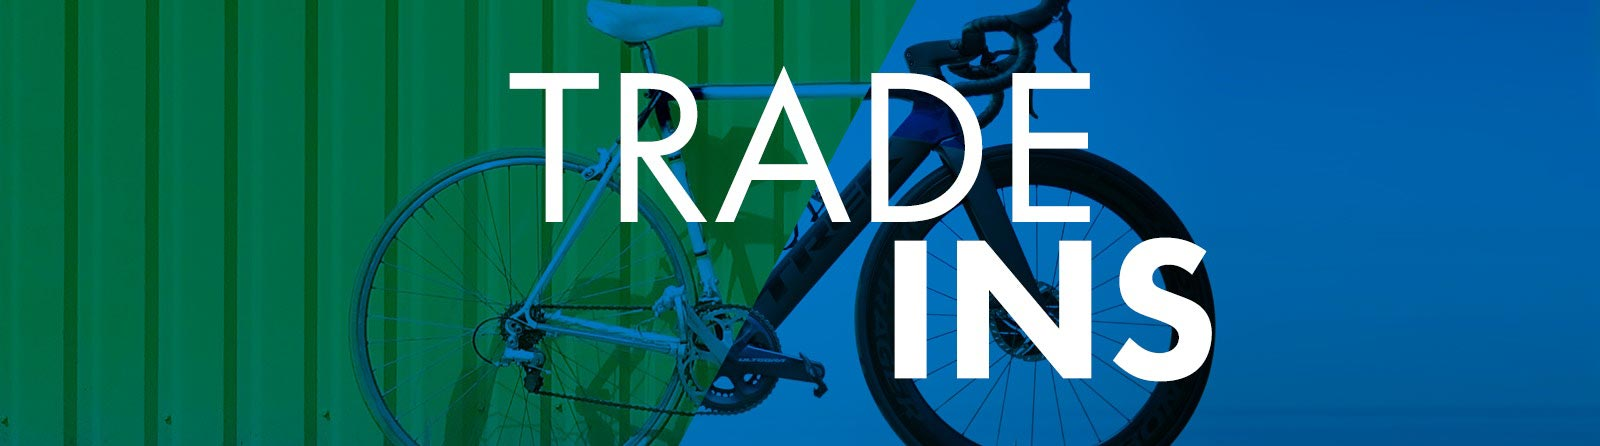 Trade in your old bike and upgrade to a new one!